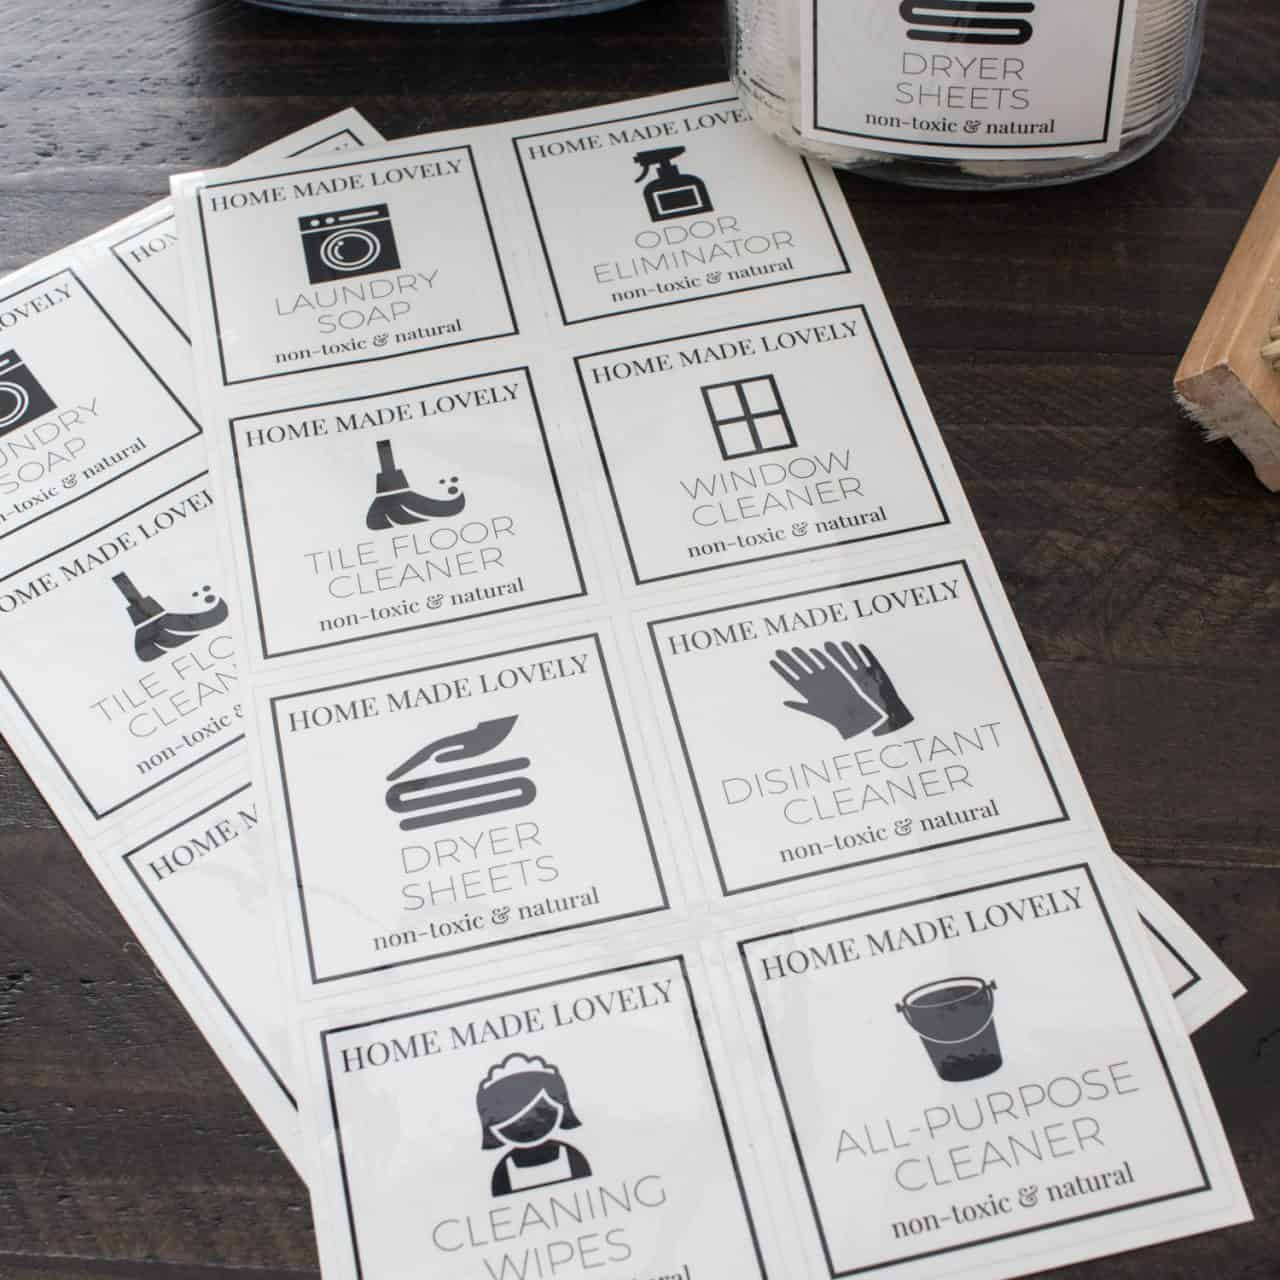 printed cleaner labels laying on table ready to be cut out